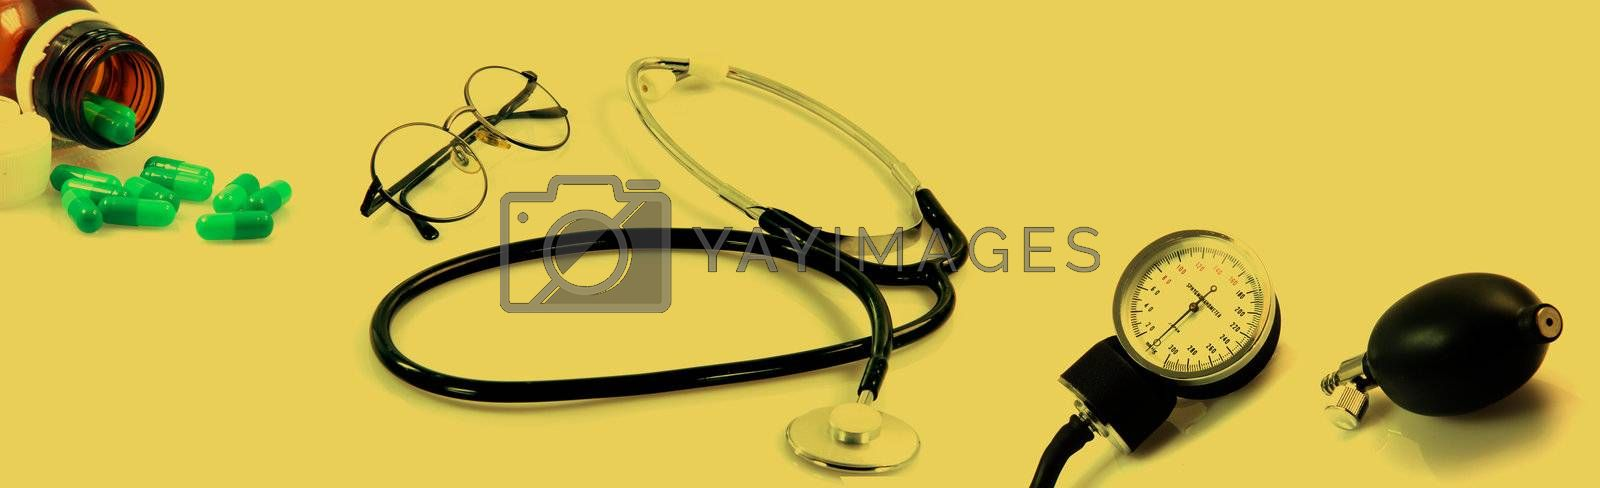 spectacles phonendoscope sphygmomanometer  and botle of pills in dark yellow tind health and medical objects this image is composed from 3 shuts with canon 400 xti